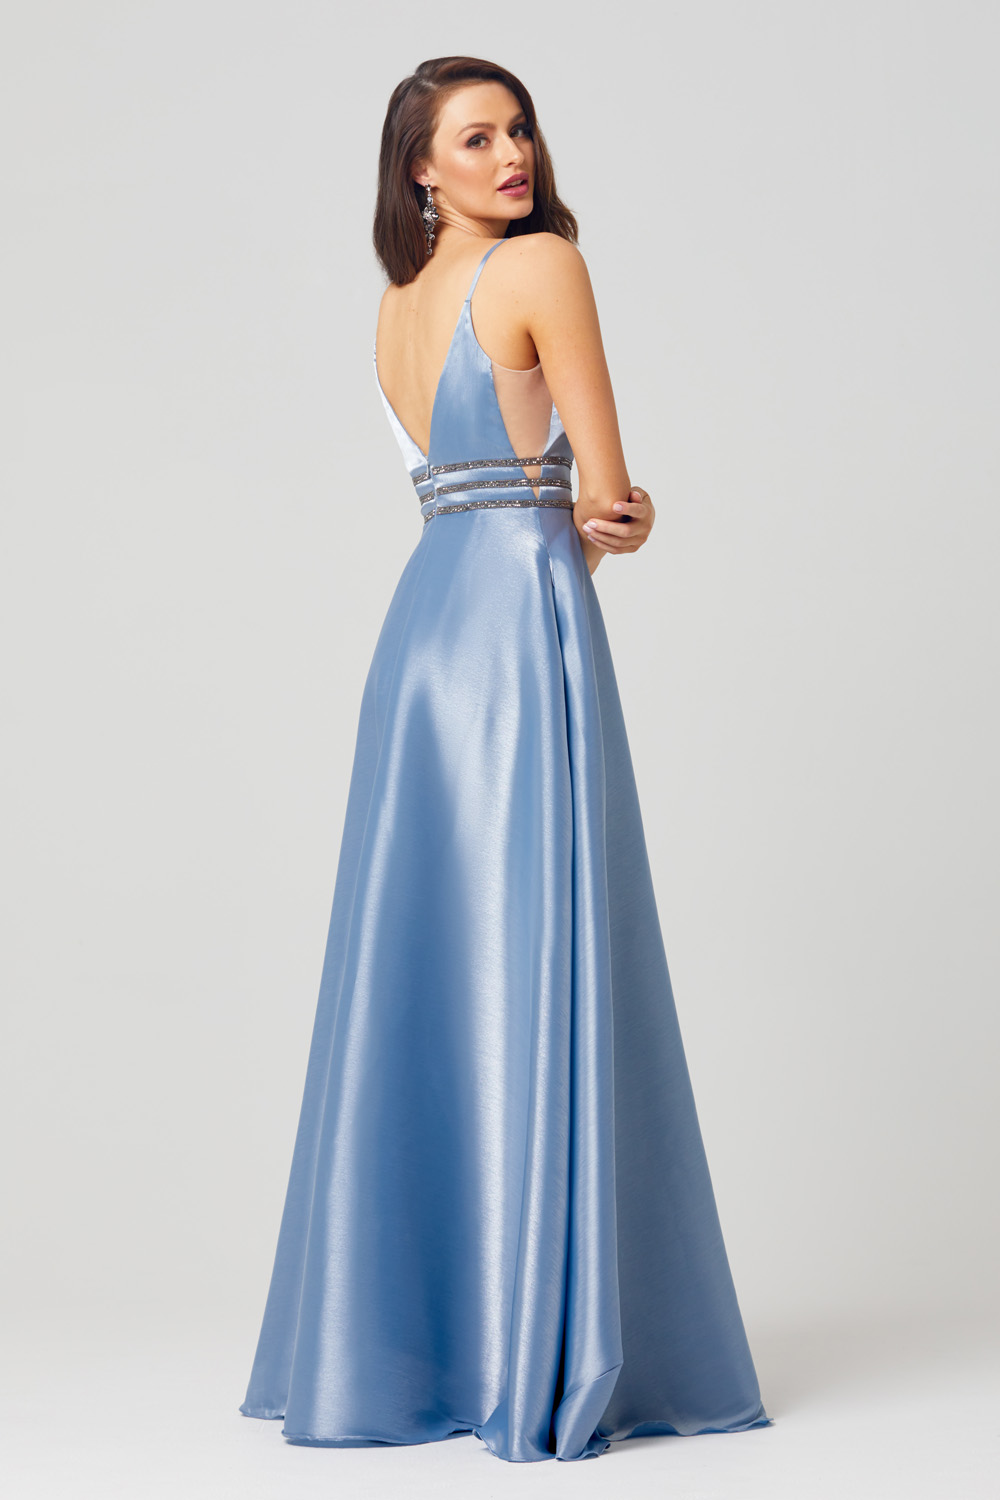 Briella A-line Satin Formal Dress - PO817 back